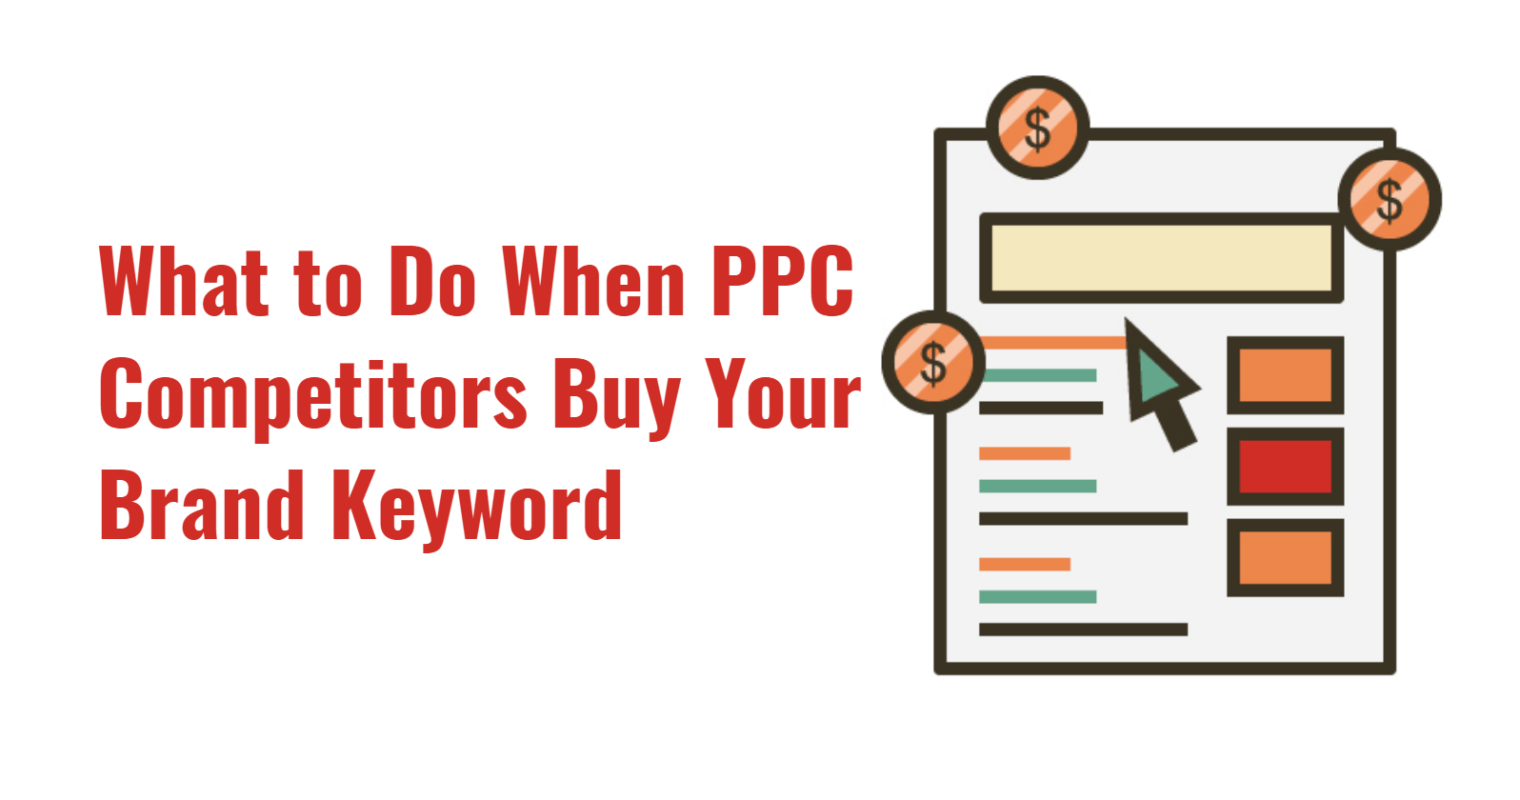 What to Do When Competitors Buy Your Brand Keyword